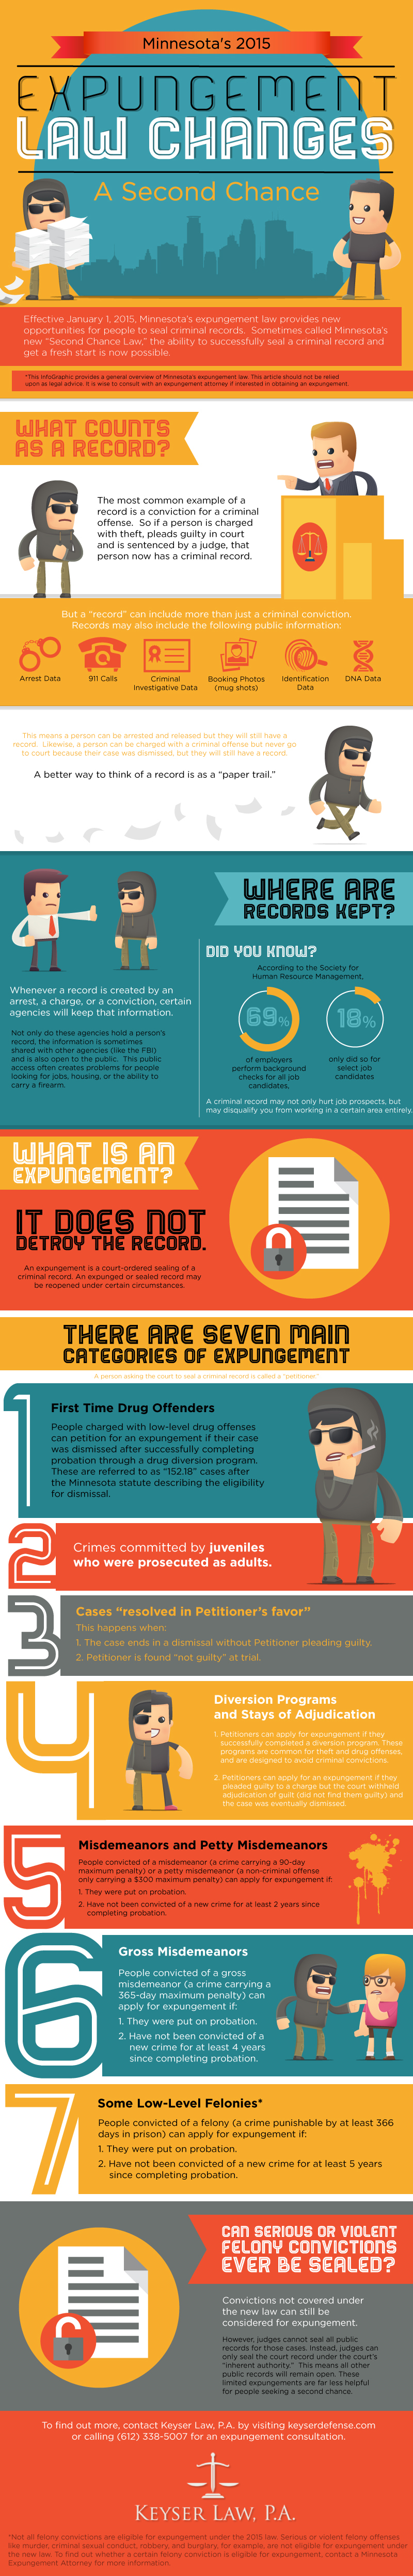 Minnesota's Expungement Law Explained - A Visual Guide